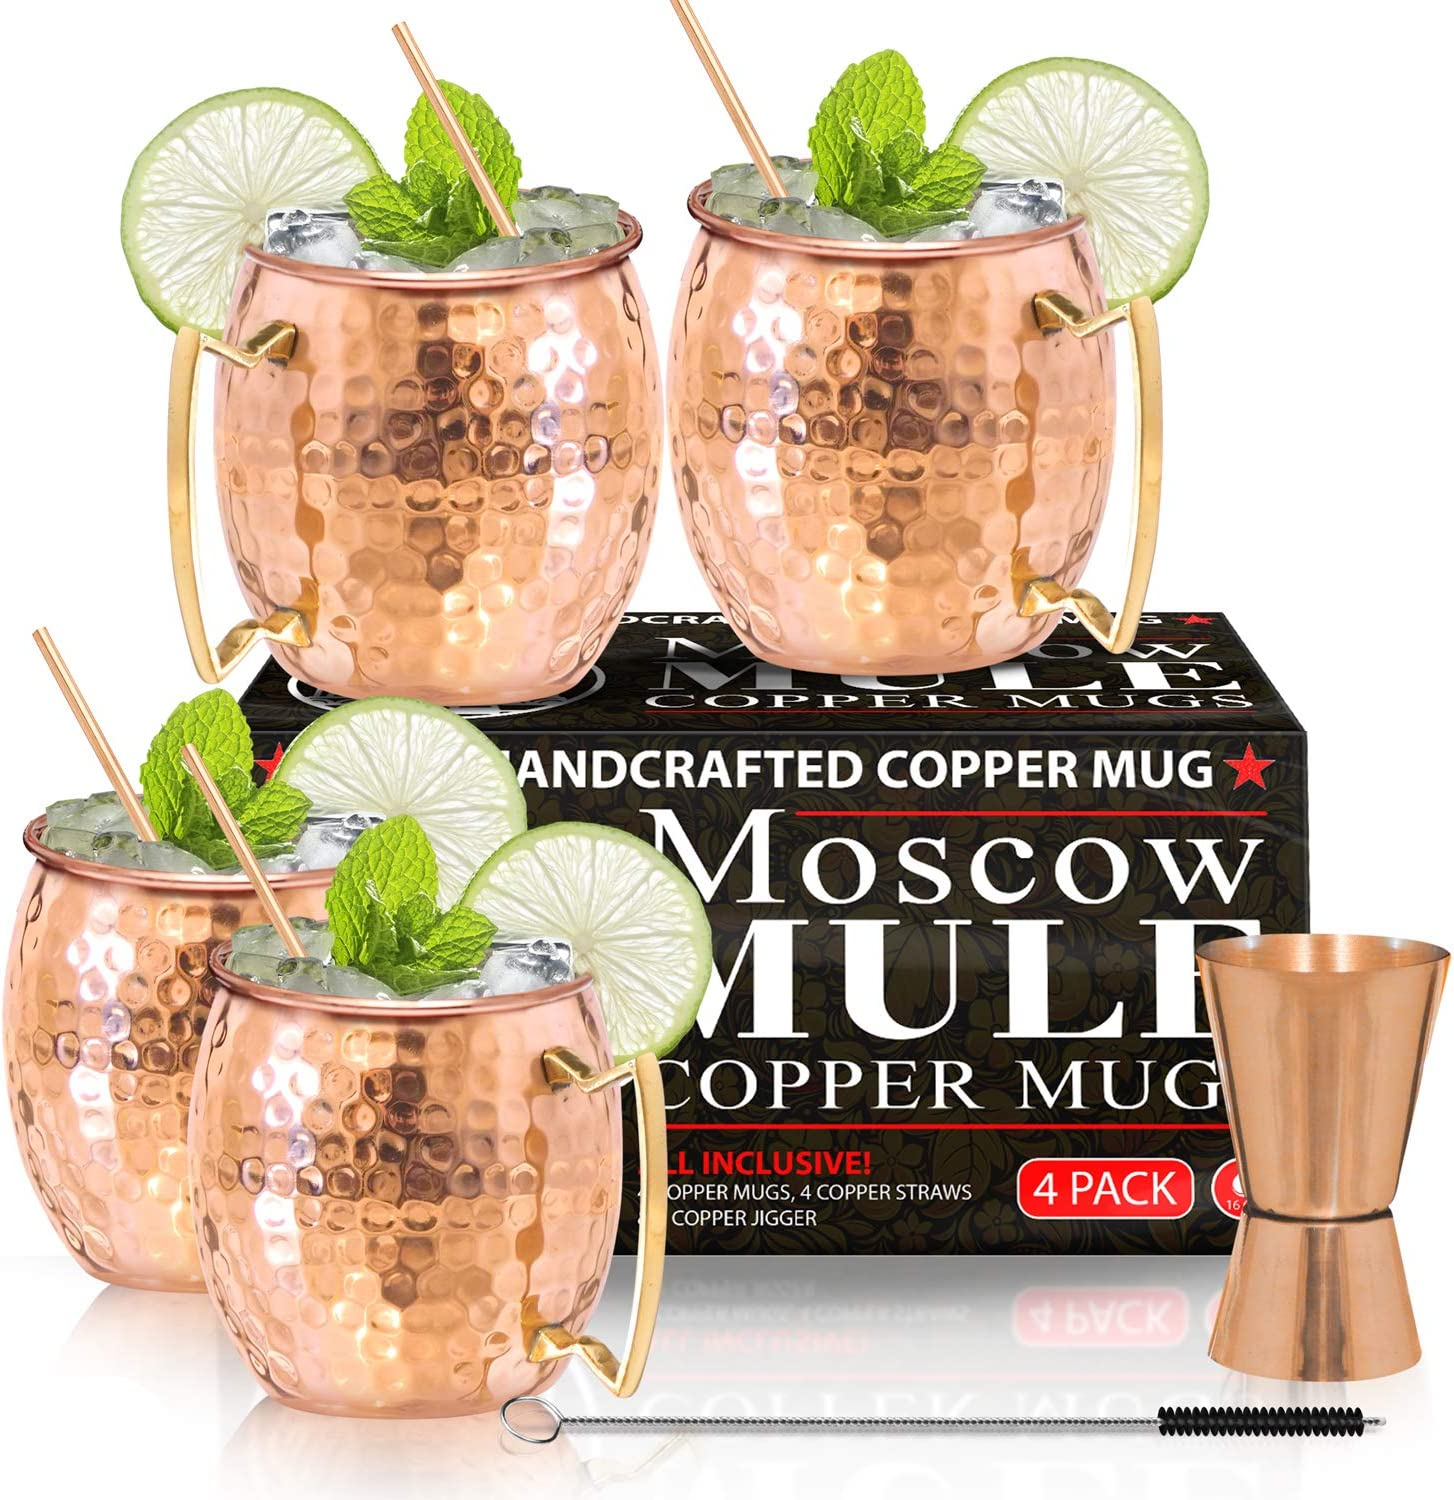 Moscow Mule Copper Mugs - Set of 4 - 100% HANDCRAFTED - Food Safe Pure Solid Copper Mugs - 16 oz Gift Set with BONUS: Highest Qu